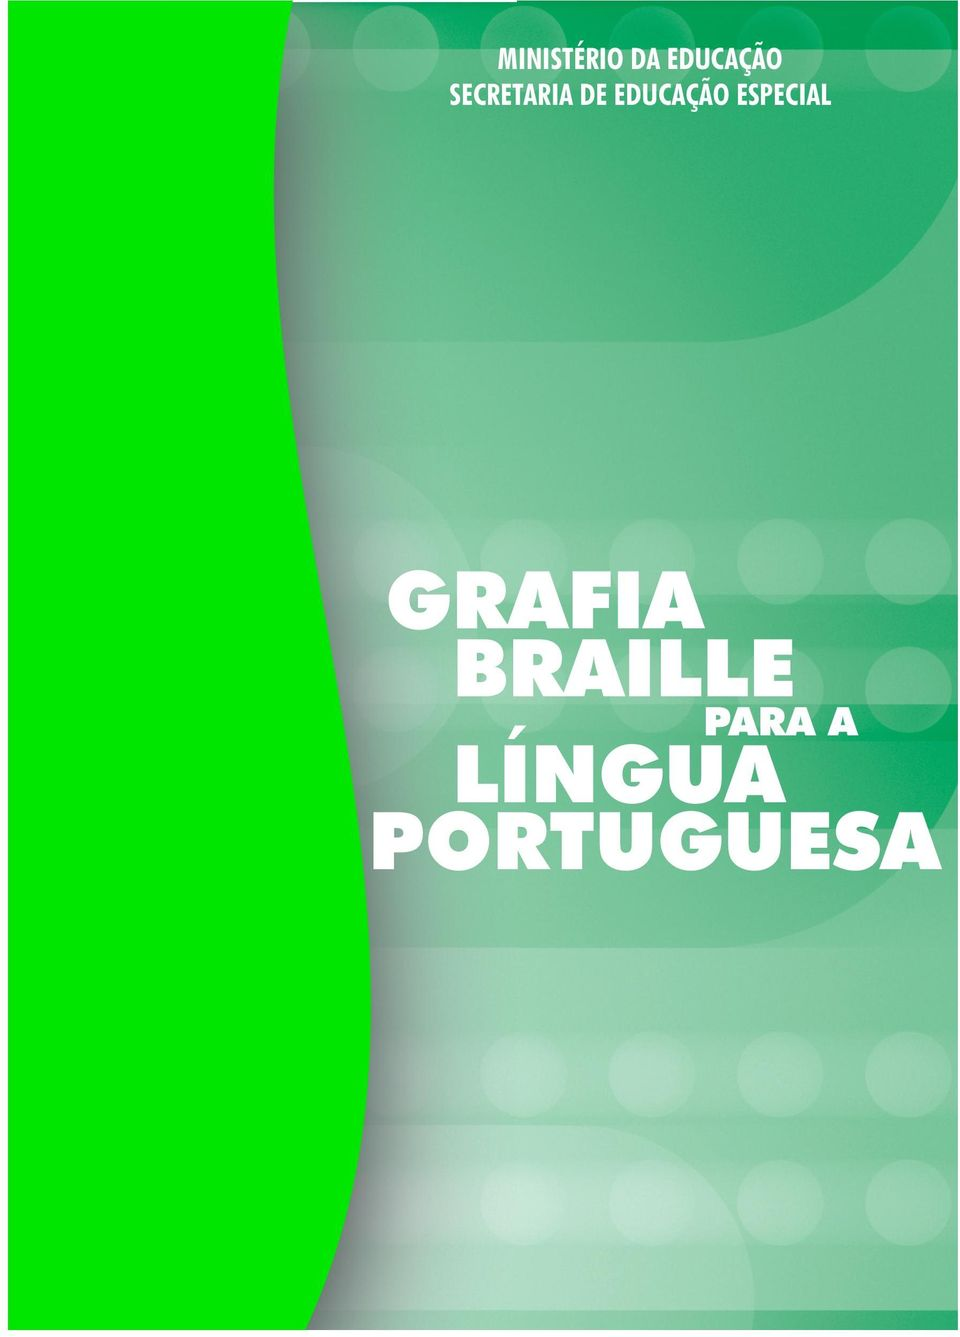 ESPECIAL GRAFIA BRAILLE